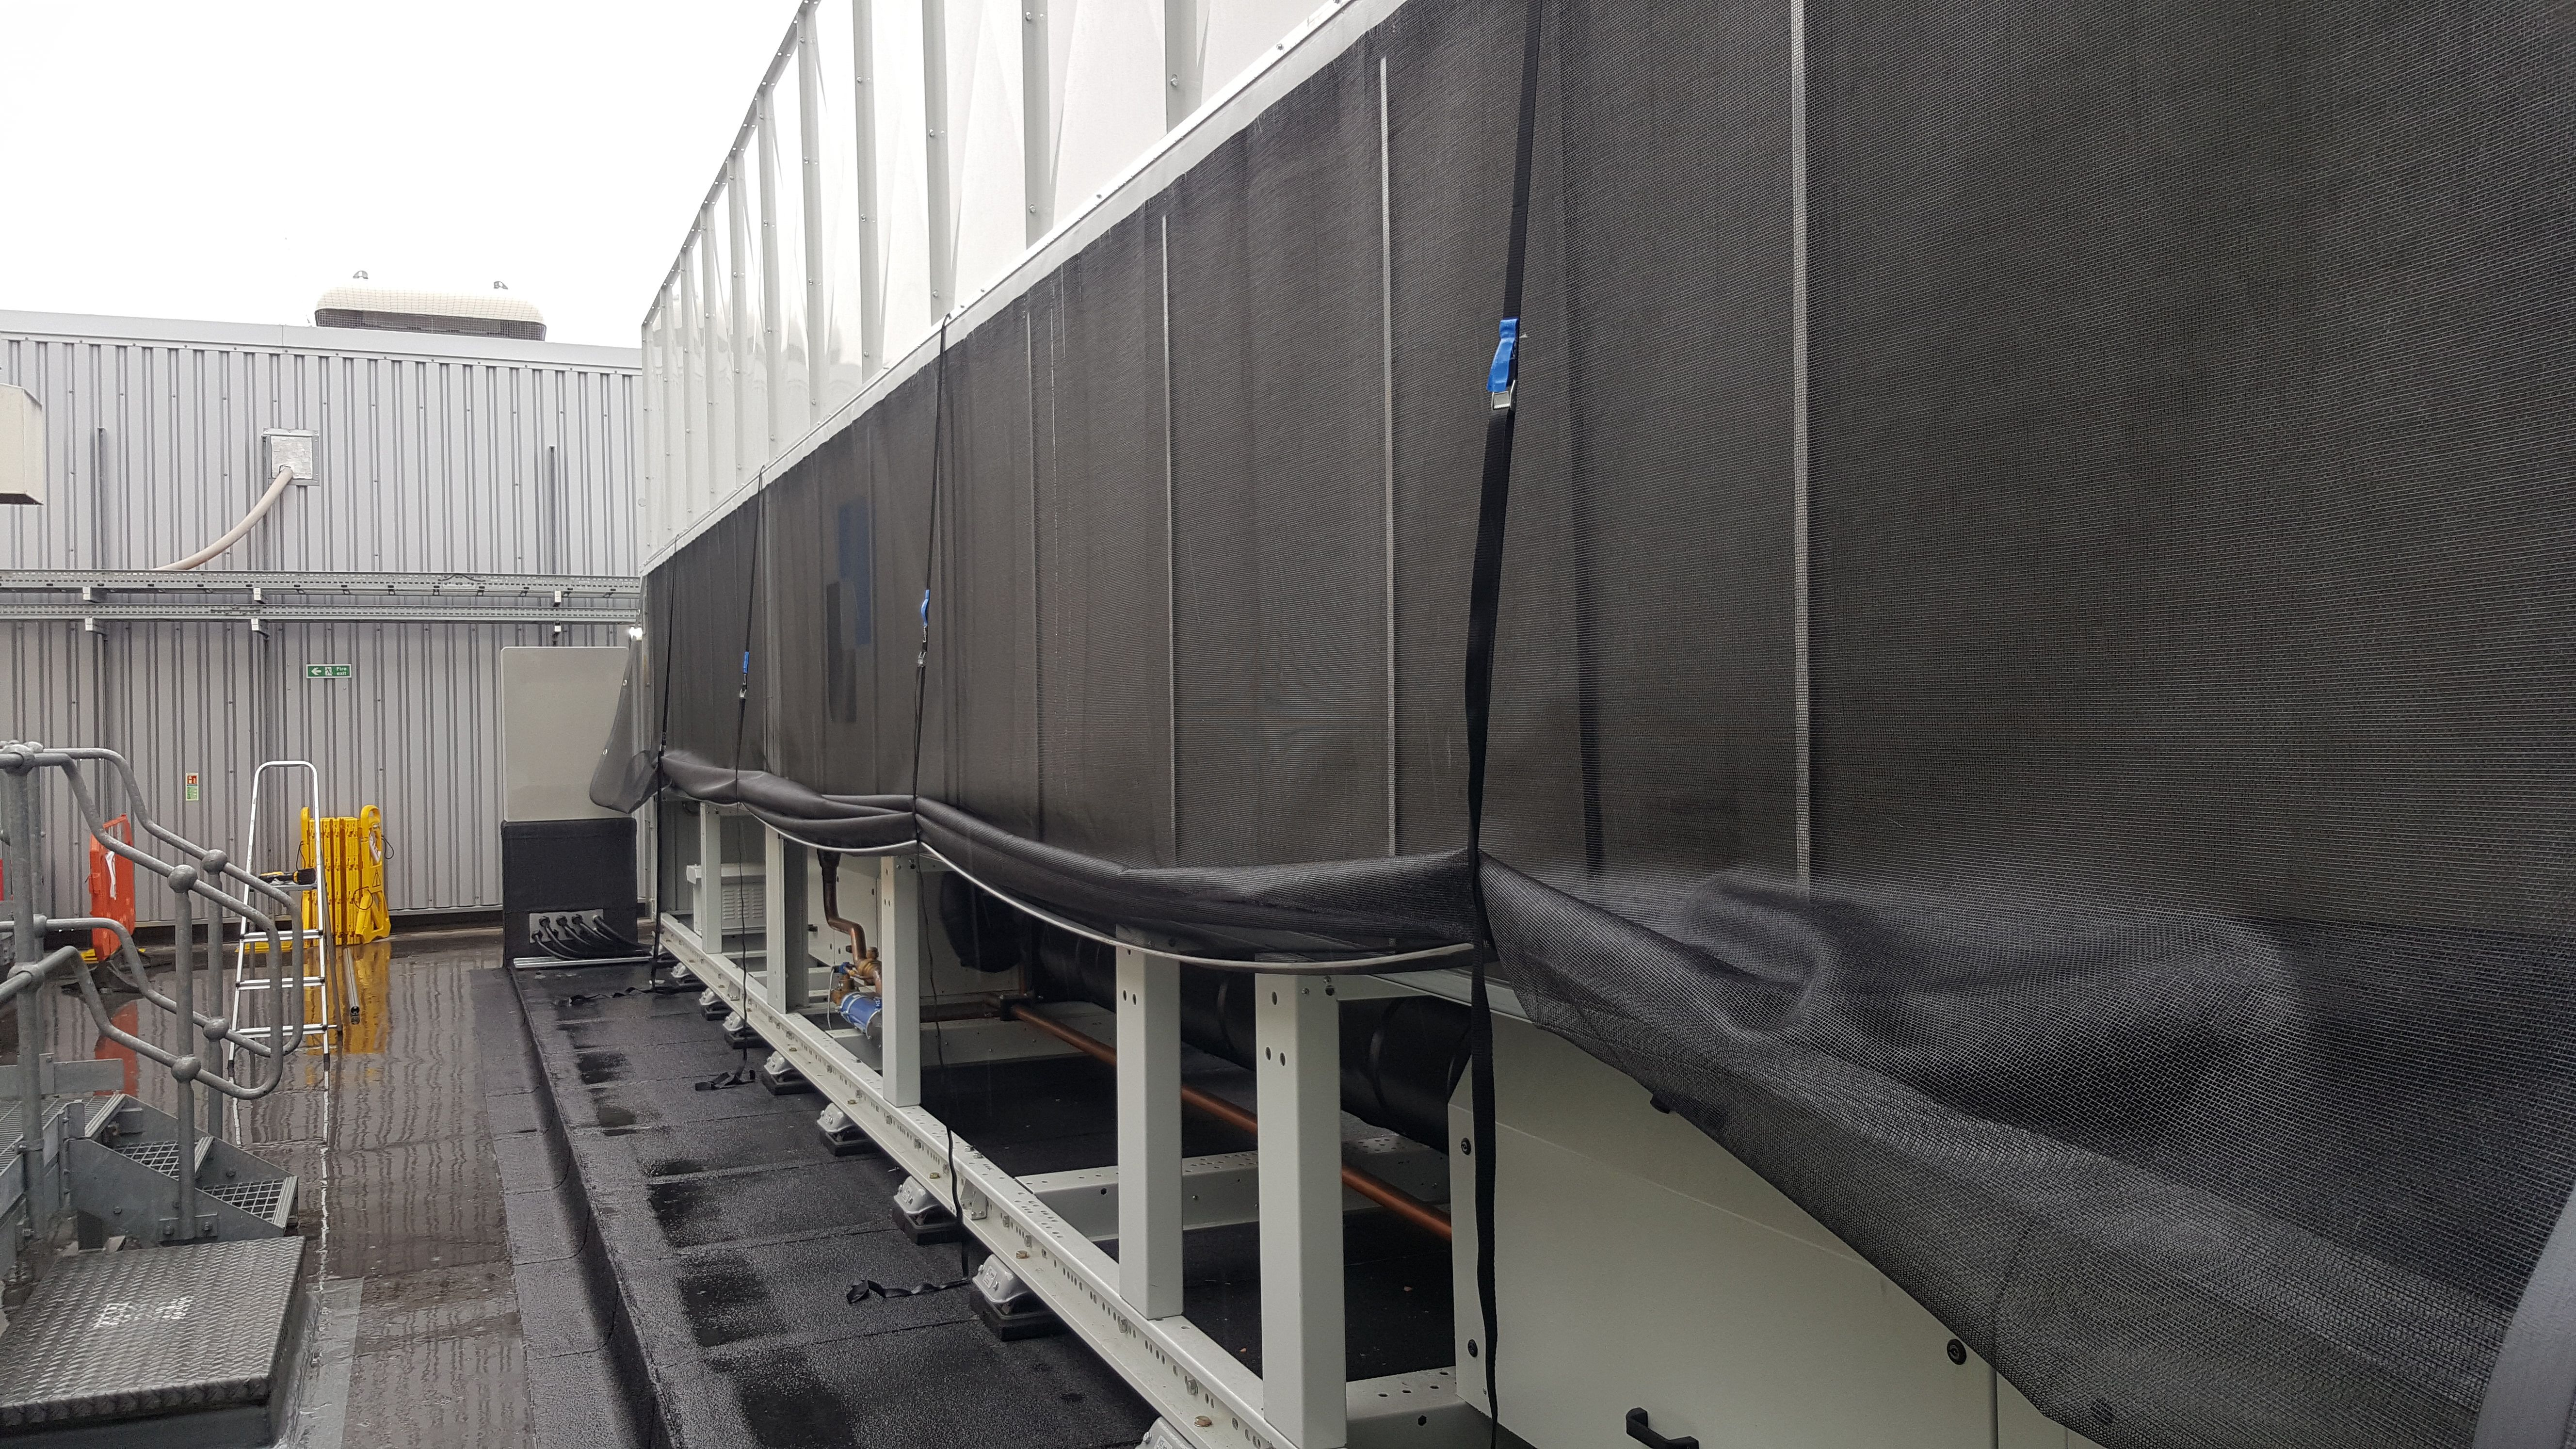 chiller air intake screen protection Air